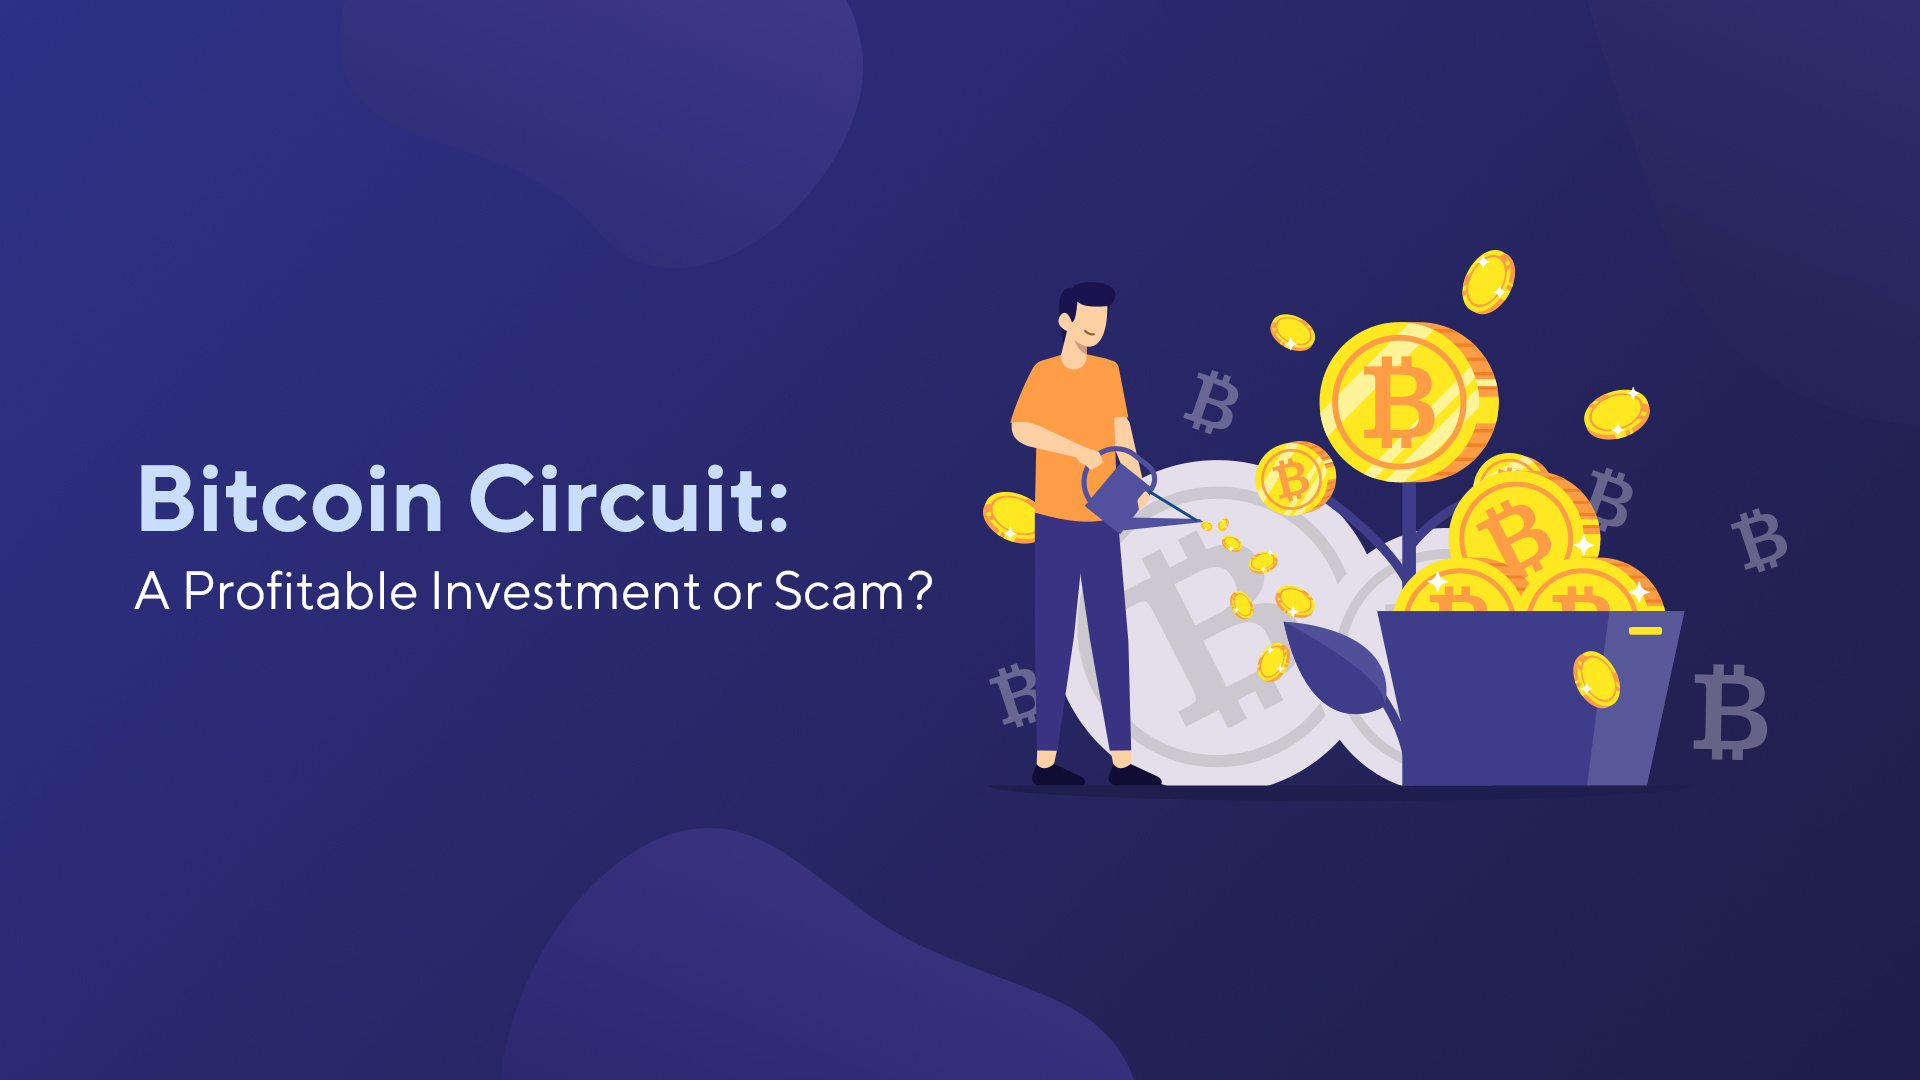 Bitcoin Circuit: A Profitable Investment or Scam?